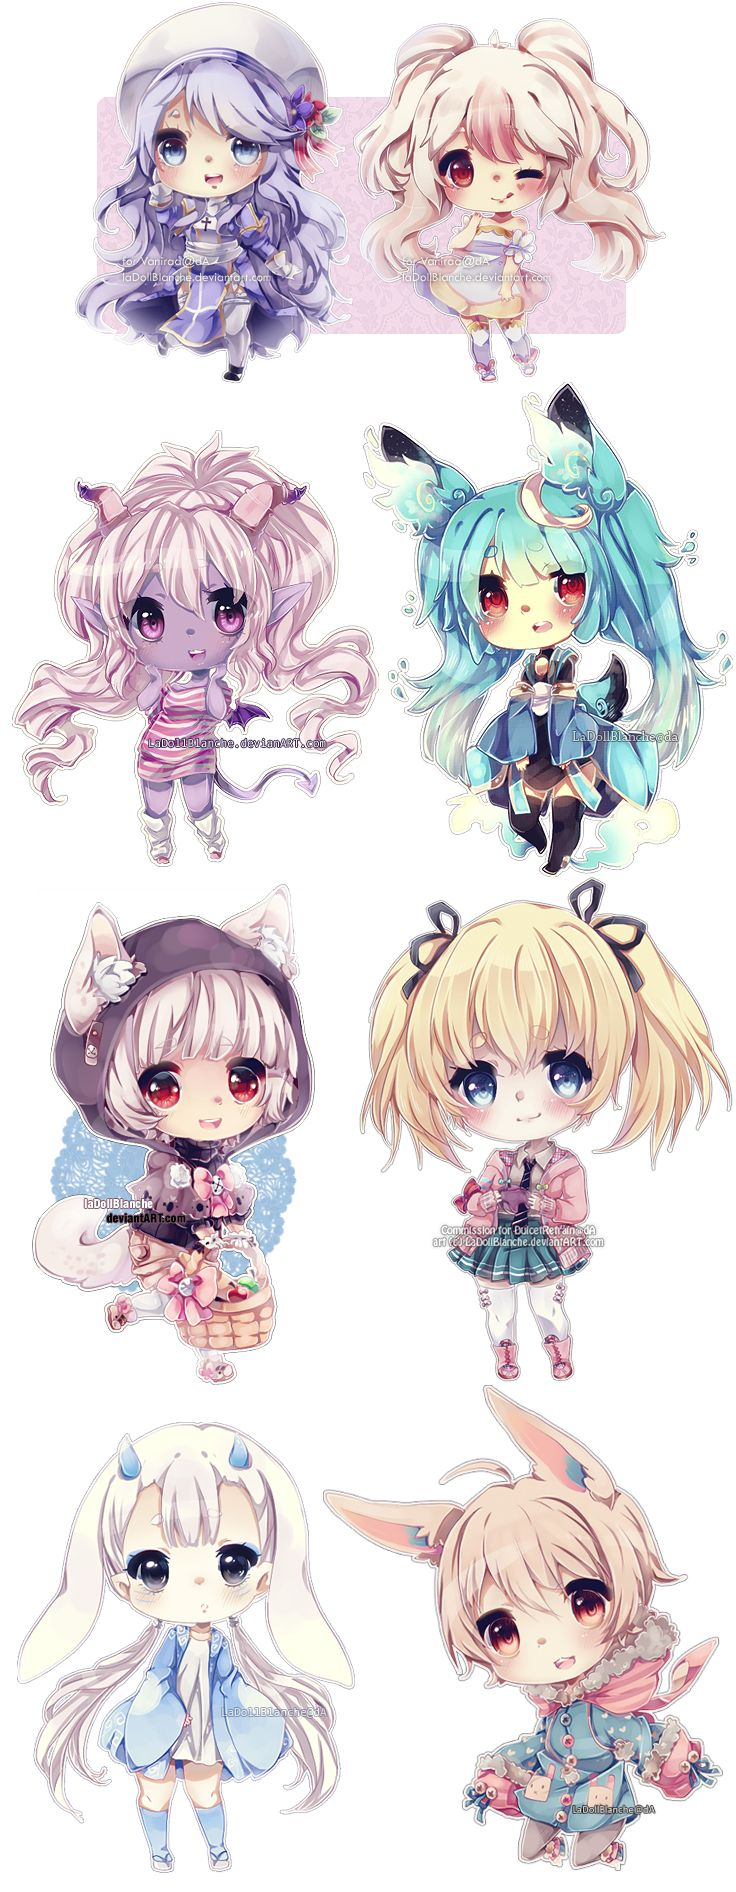 532 Best Images About Chibi On Pinterest